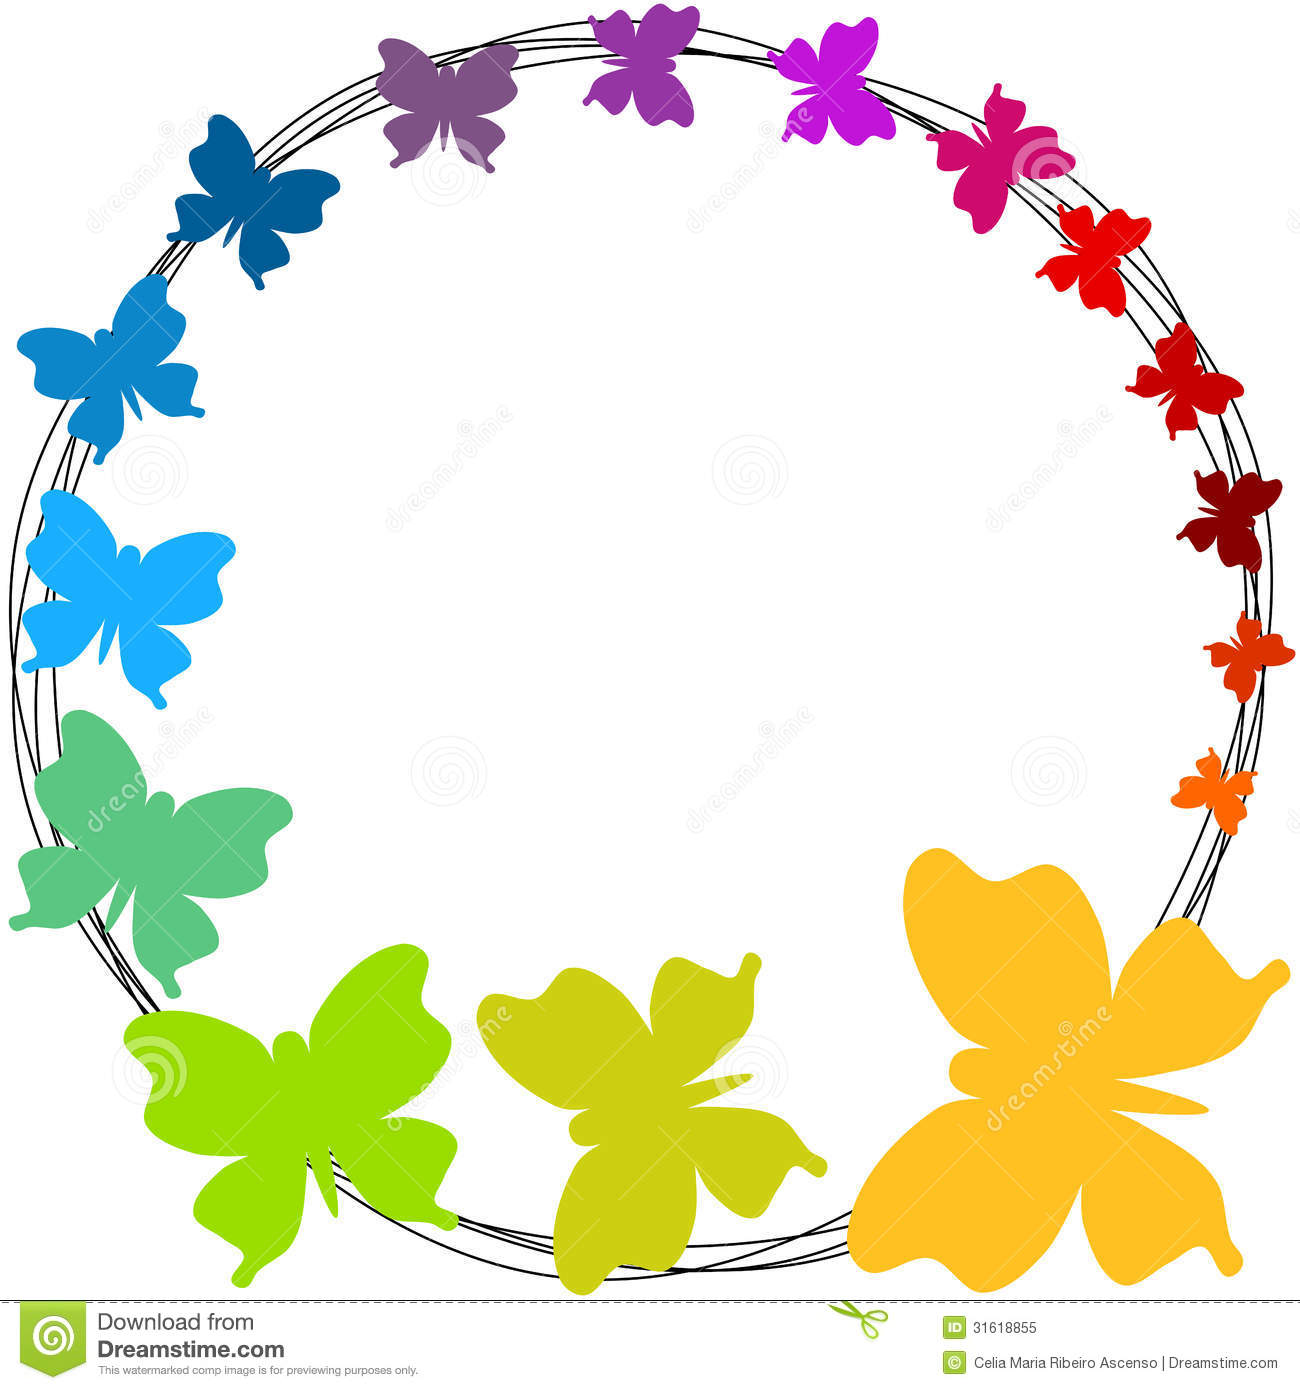 Border frame with flying colorful butterflies. Colors can be changed ...